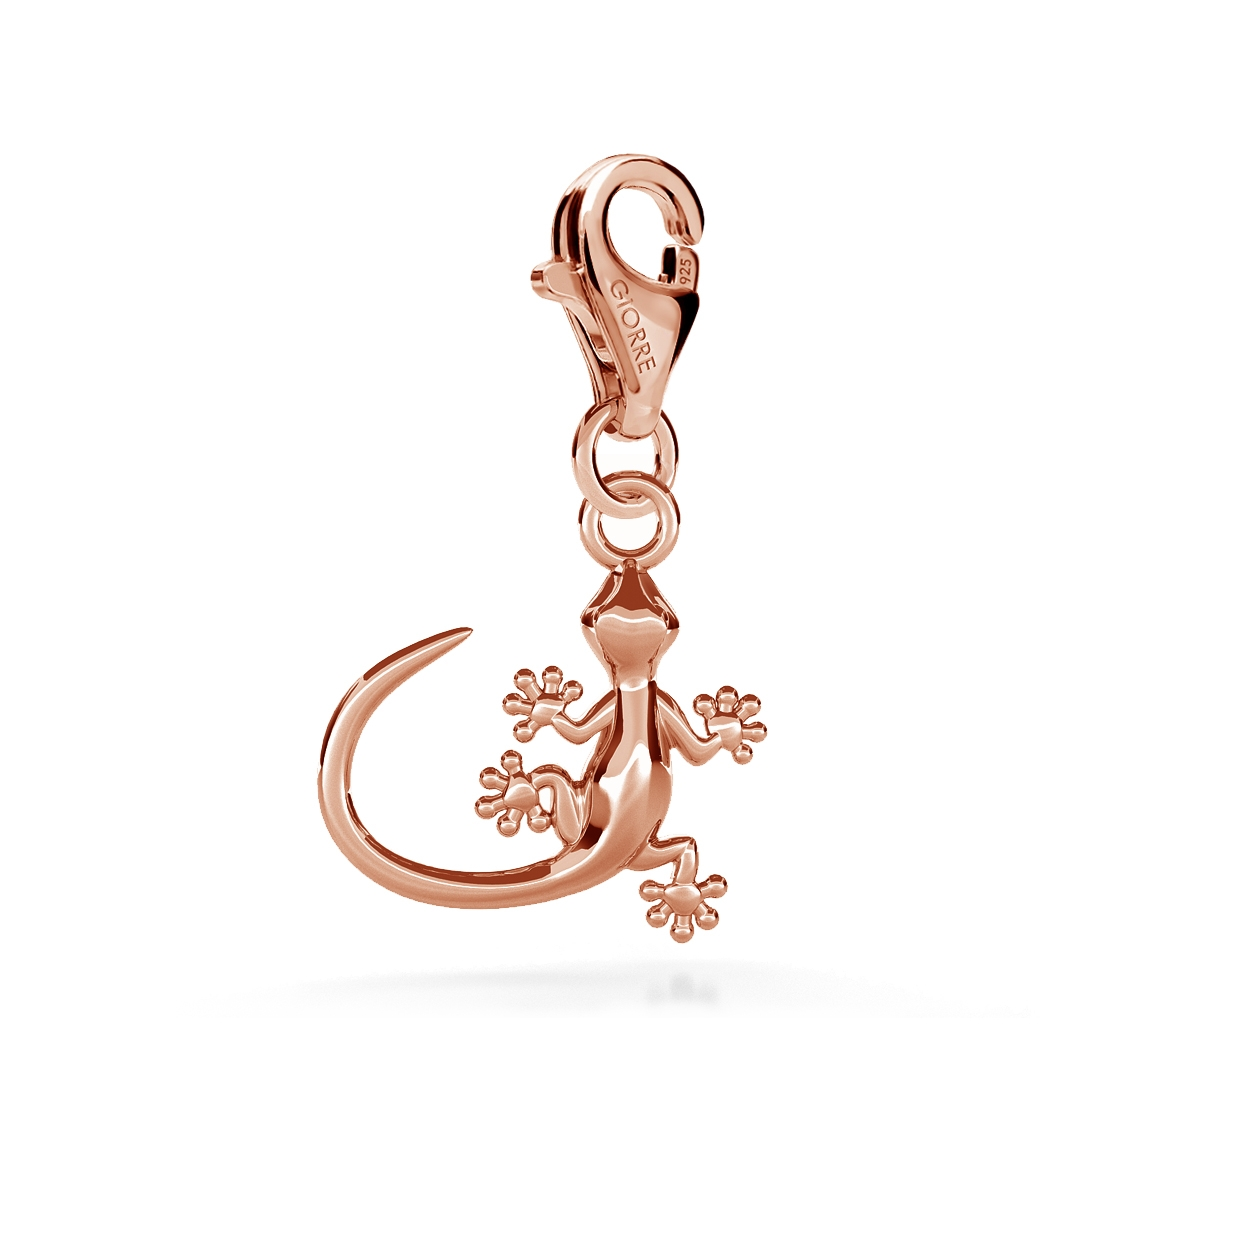 CHARM 21, LIZARD, SILVER 925,  RHODIUM OR GOLD PLATED